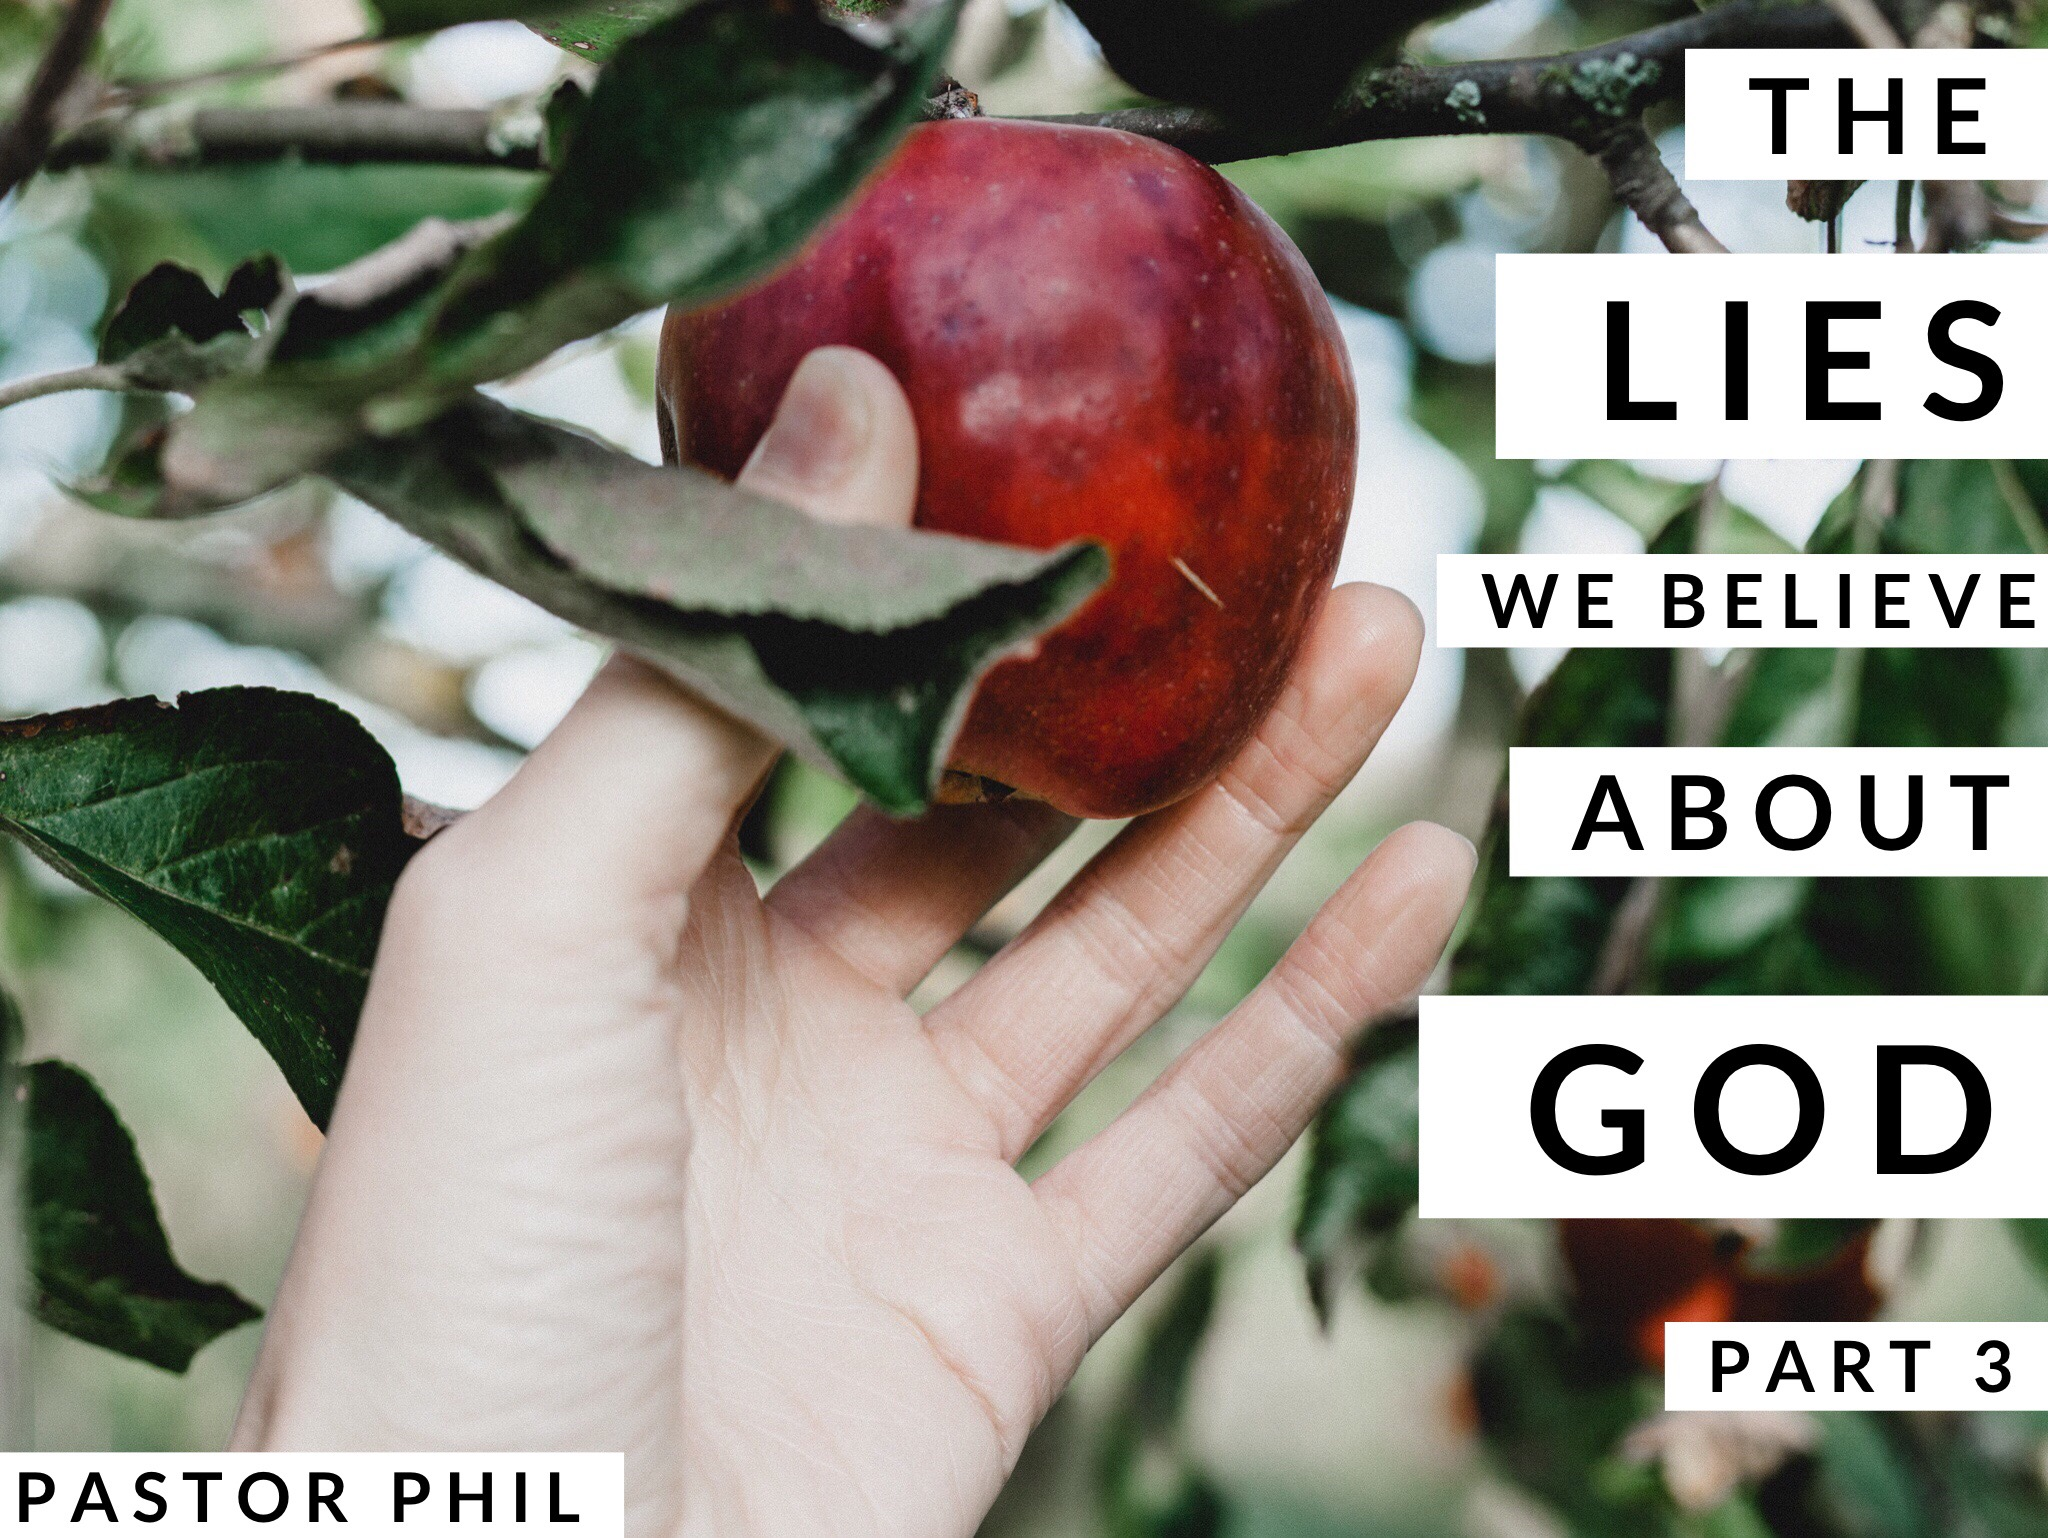 The Lies We Believe About God Pt 3